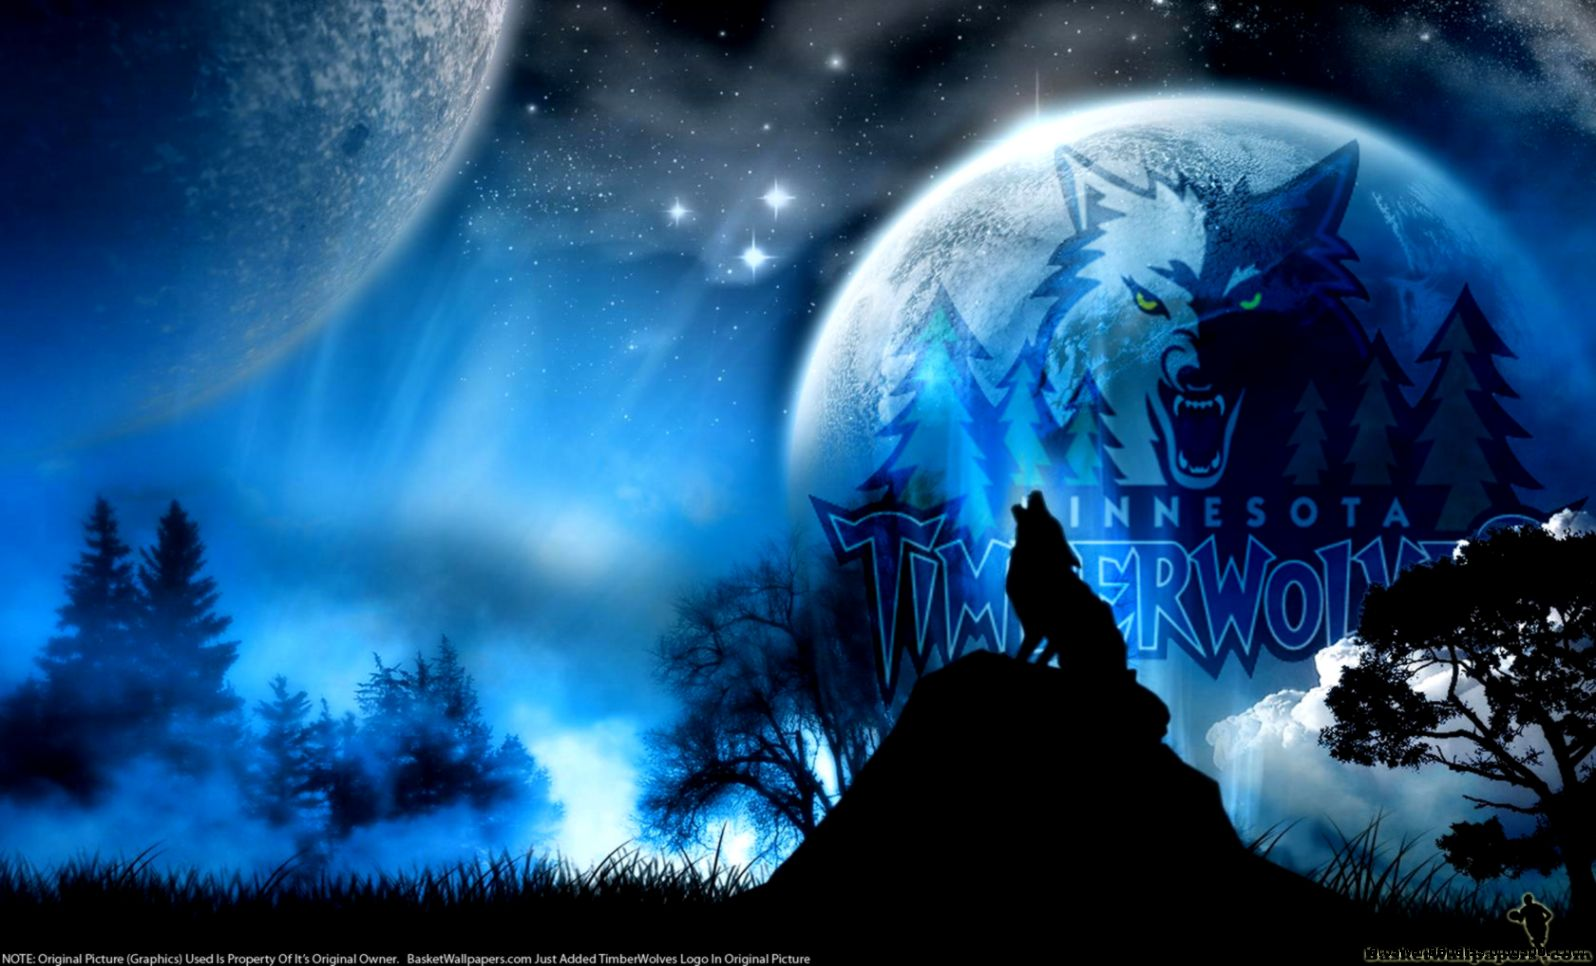 Minnesota timberwolves Wallpaper  X